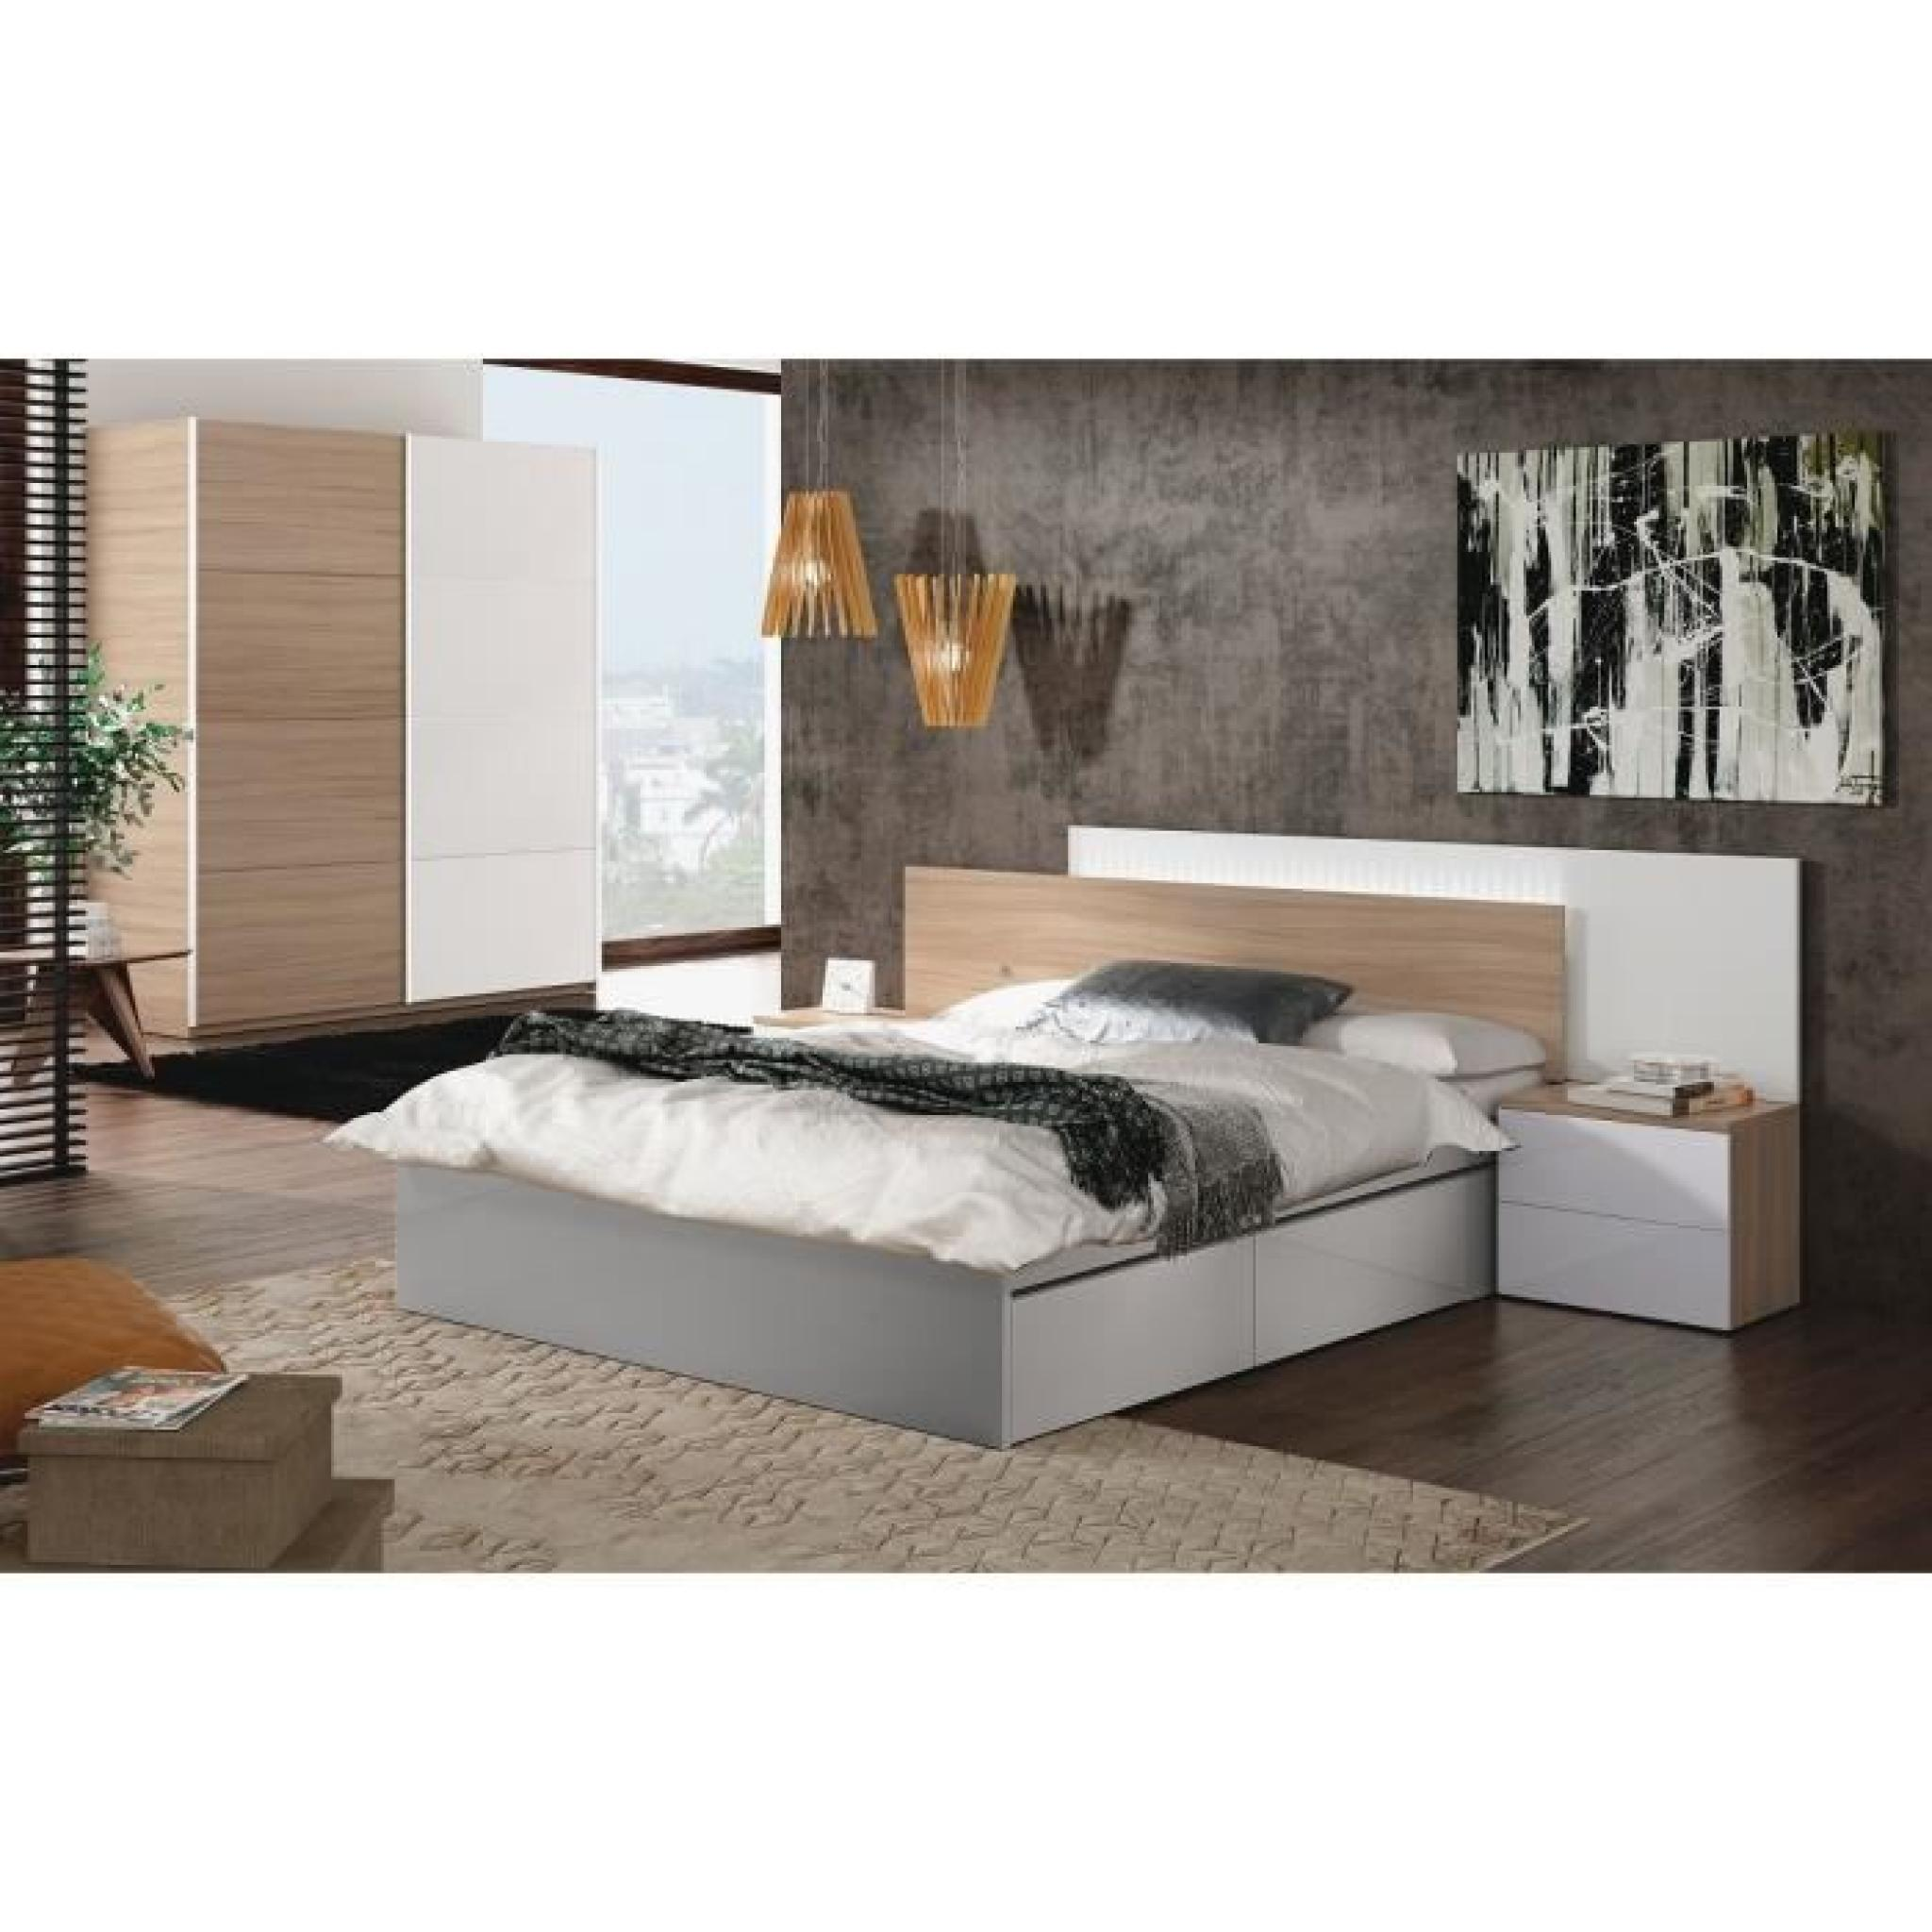 tete de lit en bois pas cher maison design. Black Bedroom Furniture Sets. Home Design Ideas